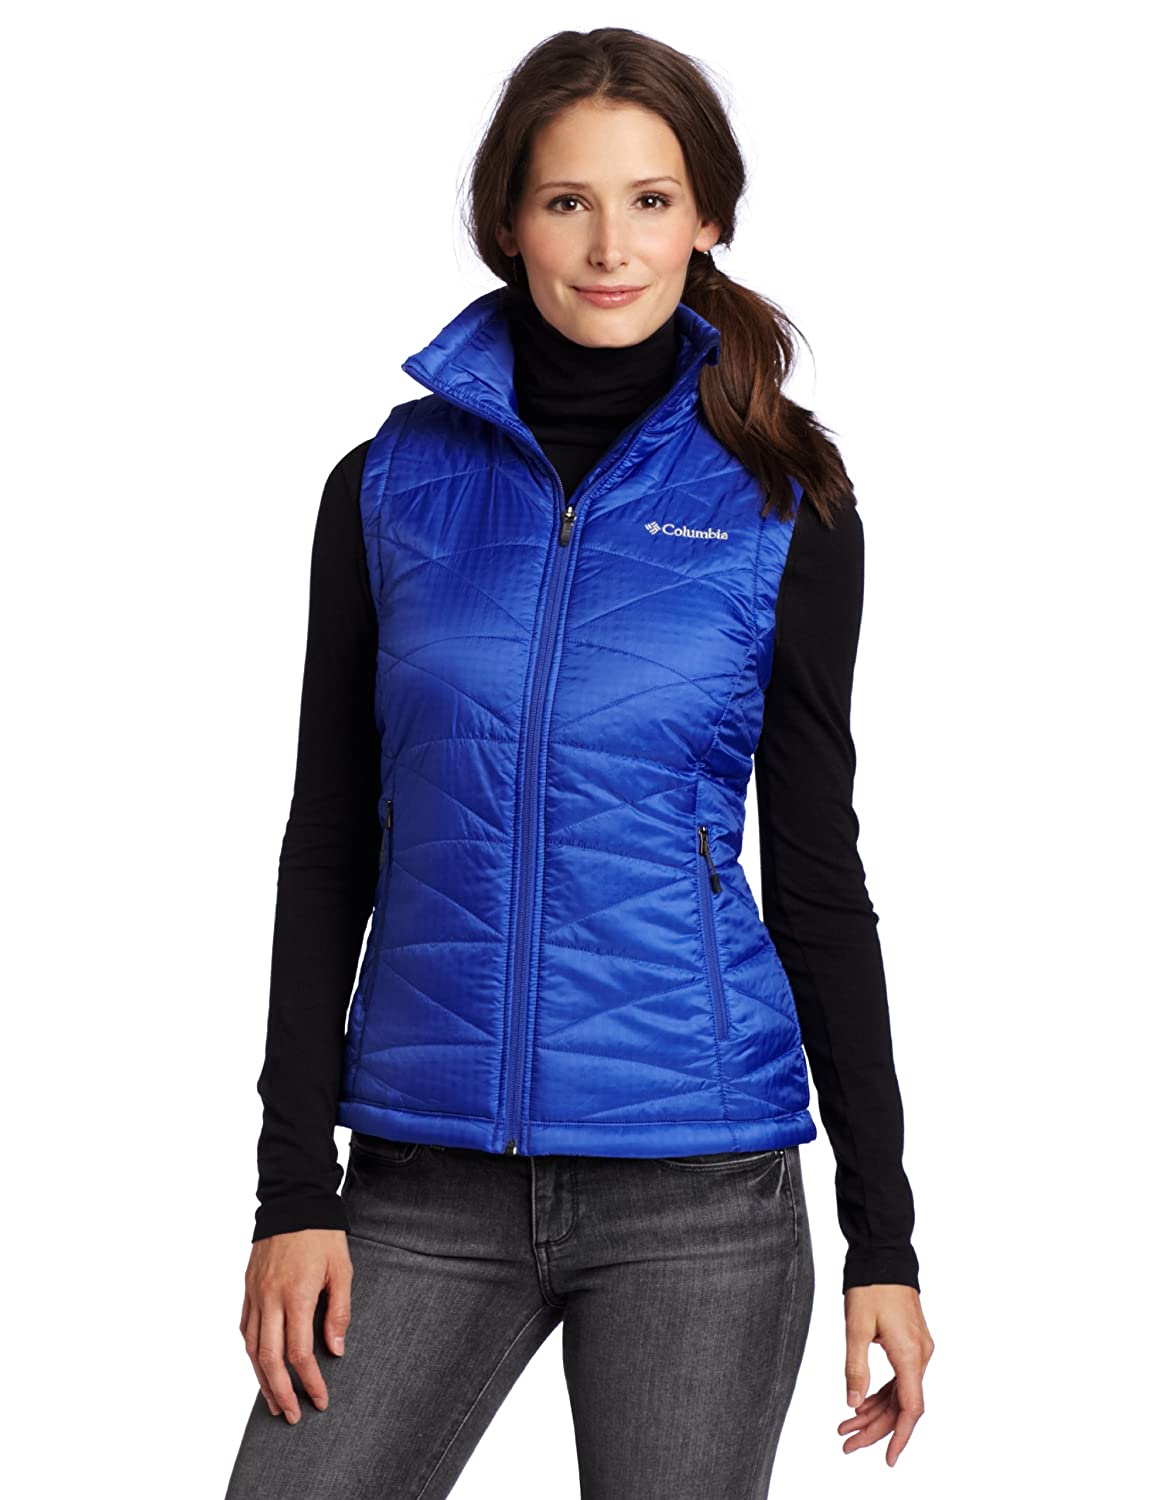 Columbia Women's Mighty Lite III Vest Columbia (Sporting Goods) WL1471